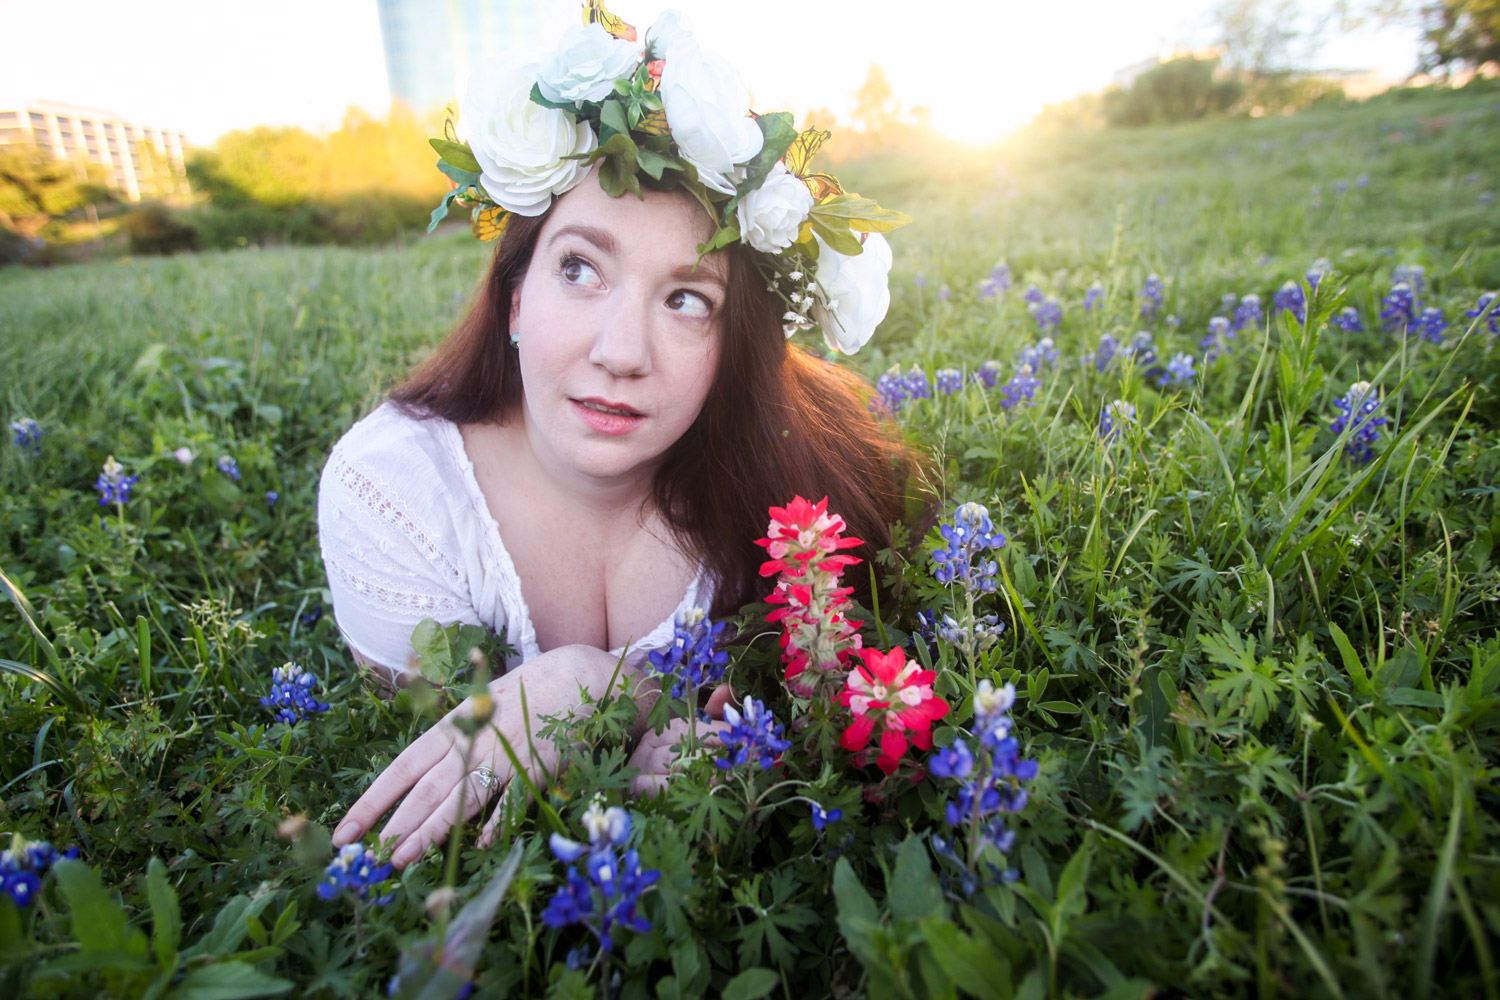 Bluebonnet-Portraits